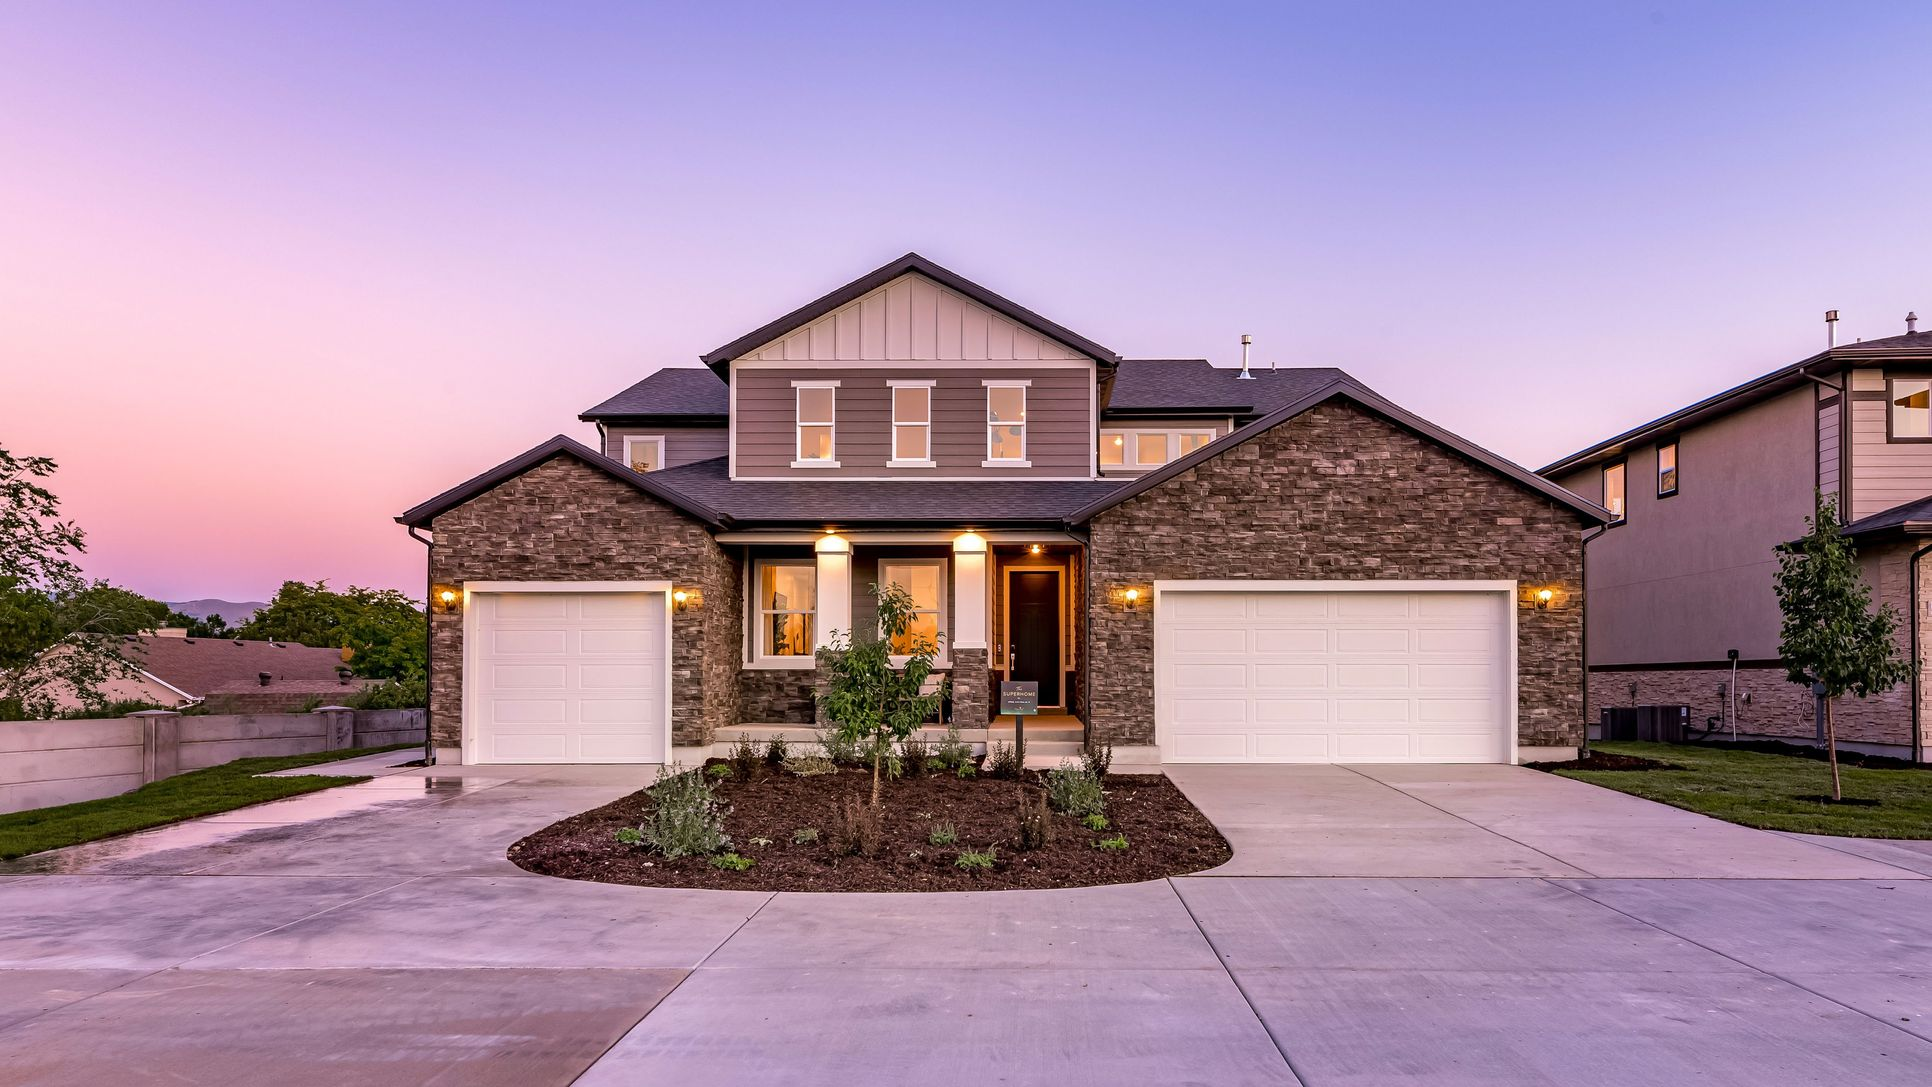 New homes for sale in South Jordan, Utah by Lennar